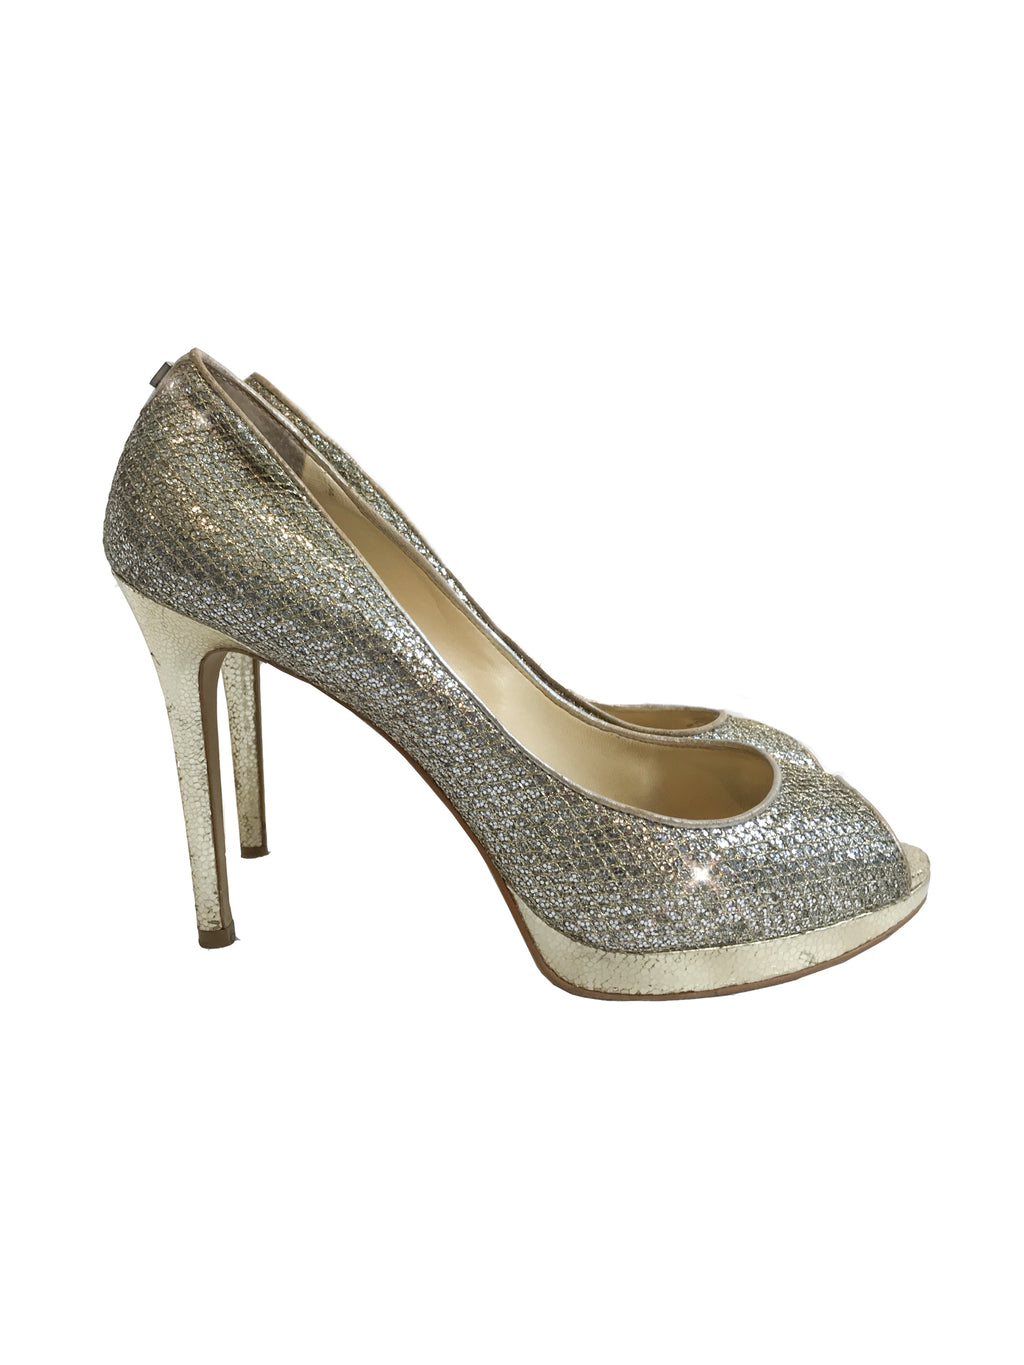 Gold & Silver Peep Toe Heels - Ivanka Trump - Covetella Dress Rentals